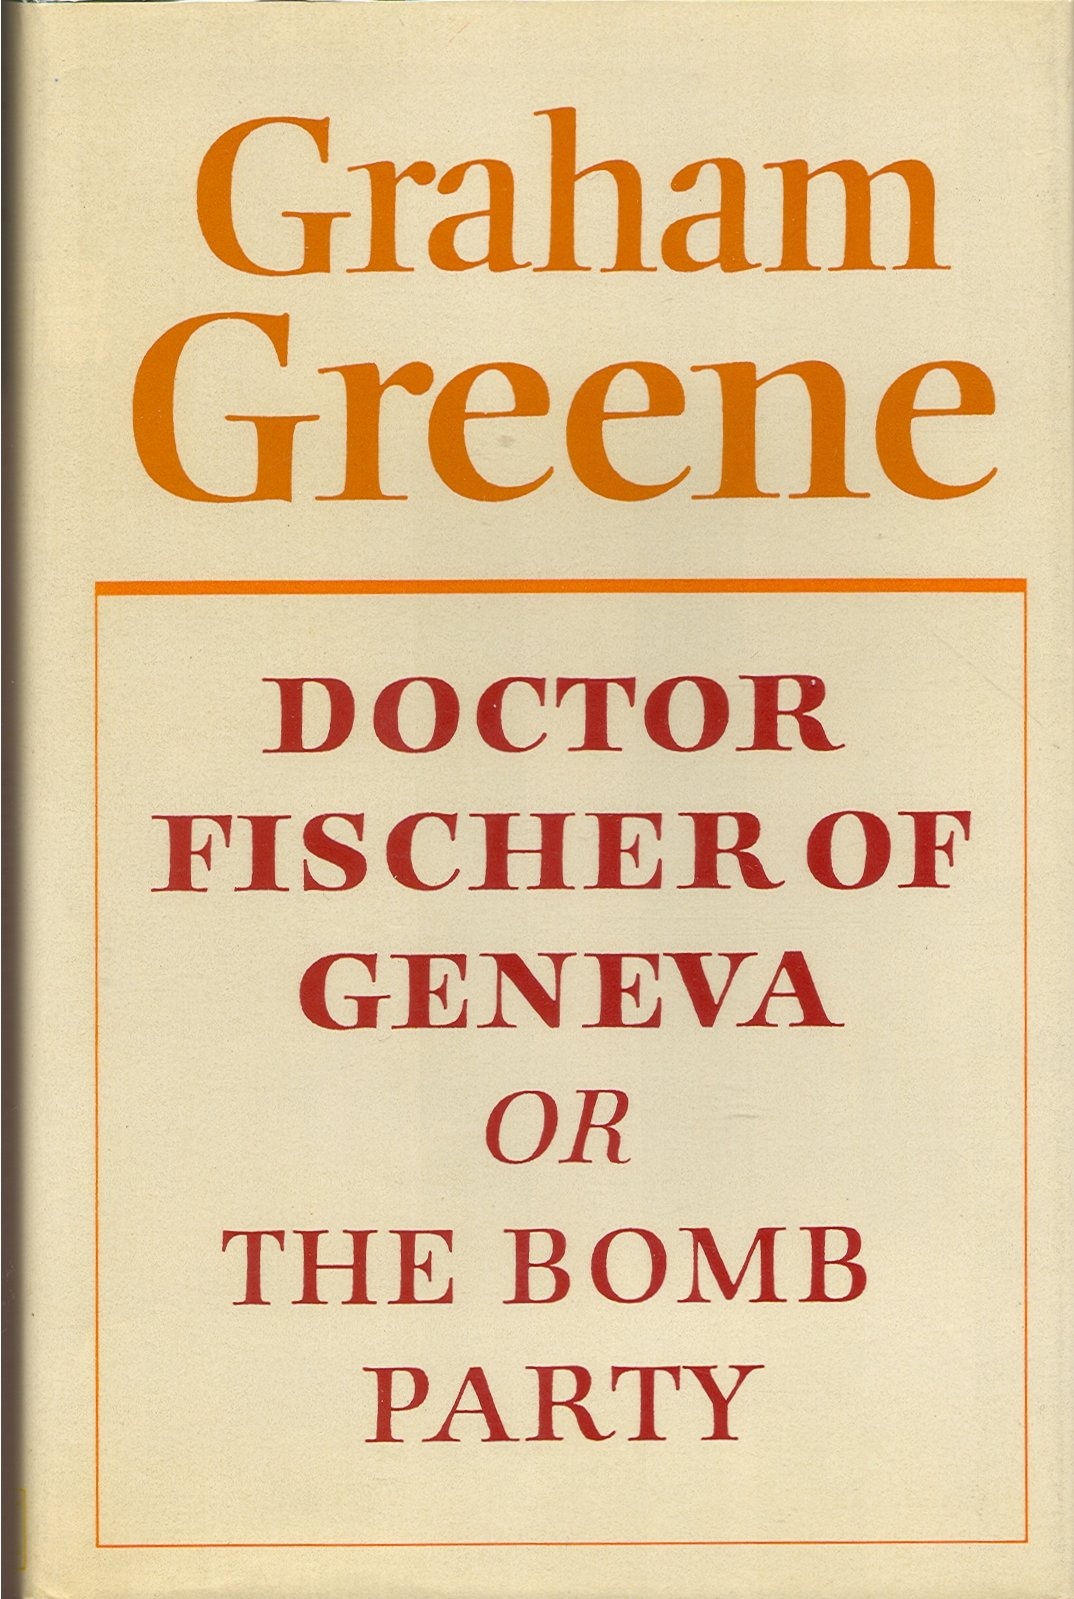 Boekcover Doctor Fischer of Geneva or The bomb party